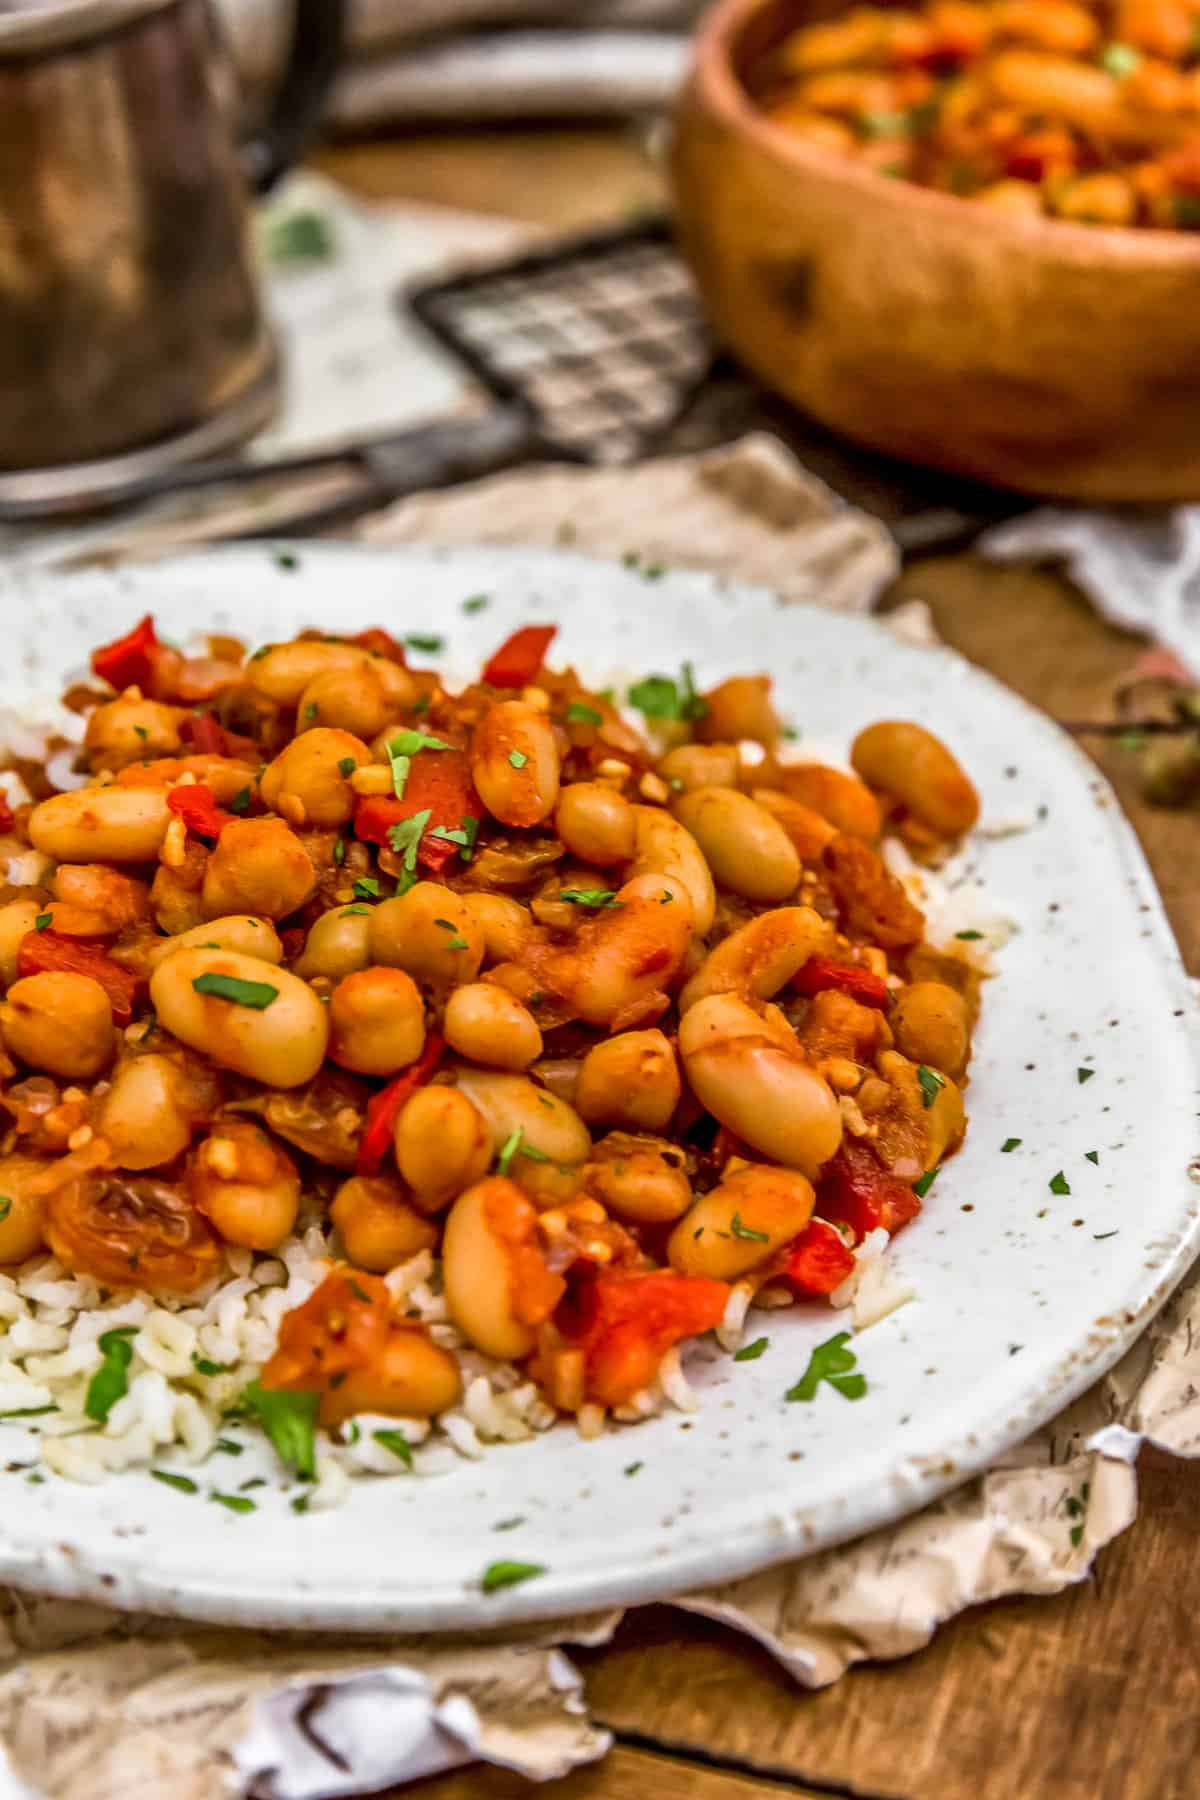 Plate of Moroccan Skillet Beans